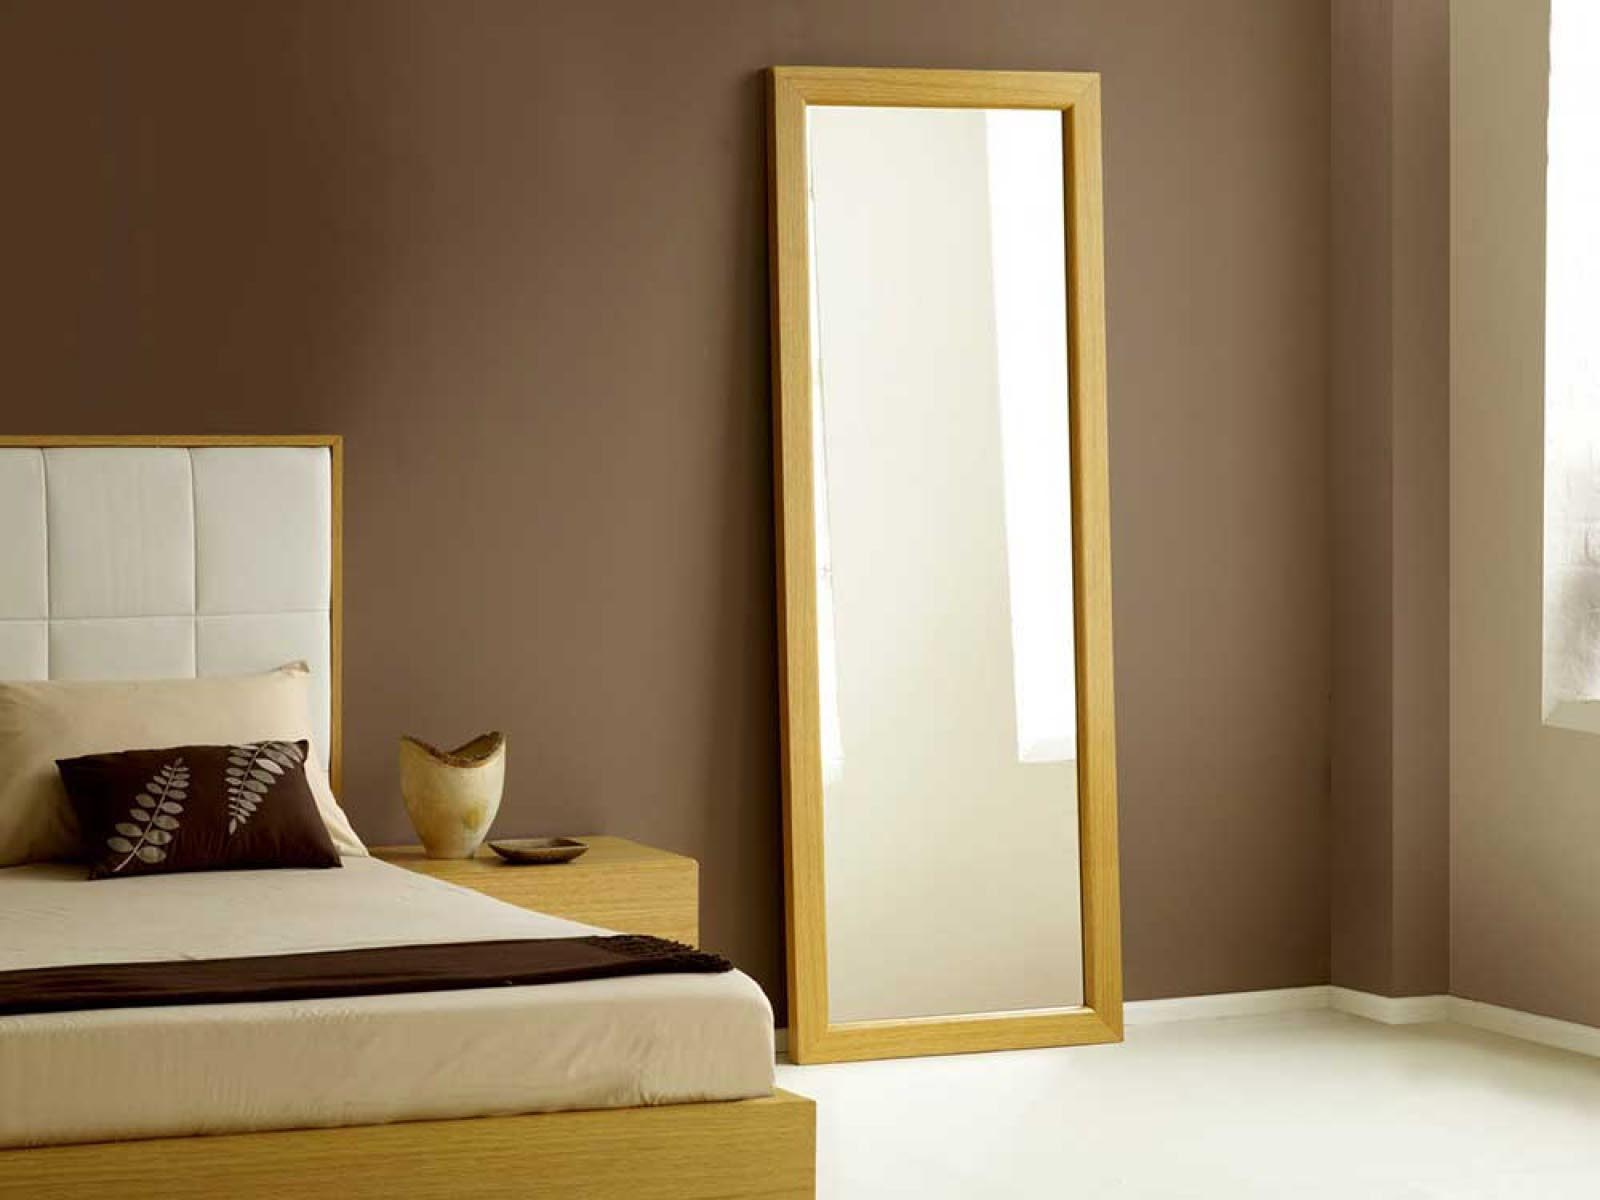 Cheap floor length mirrors best decor things for Decorative floor length mirrors